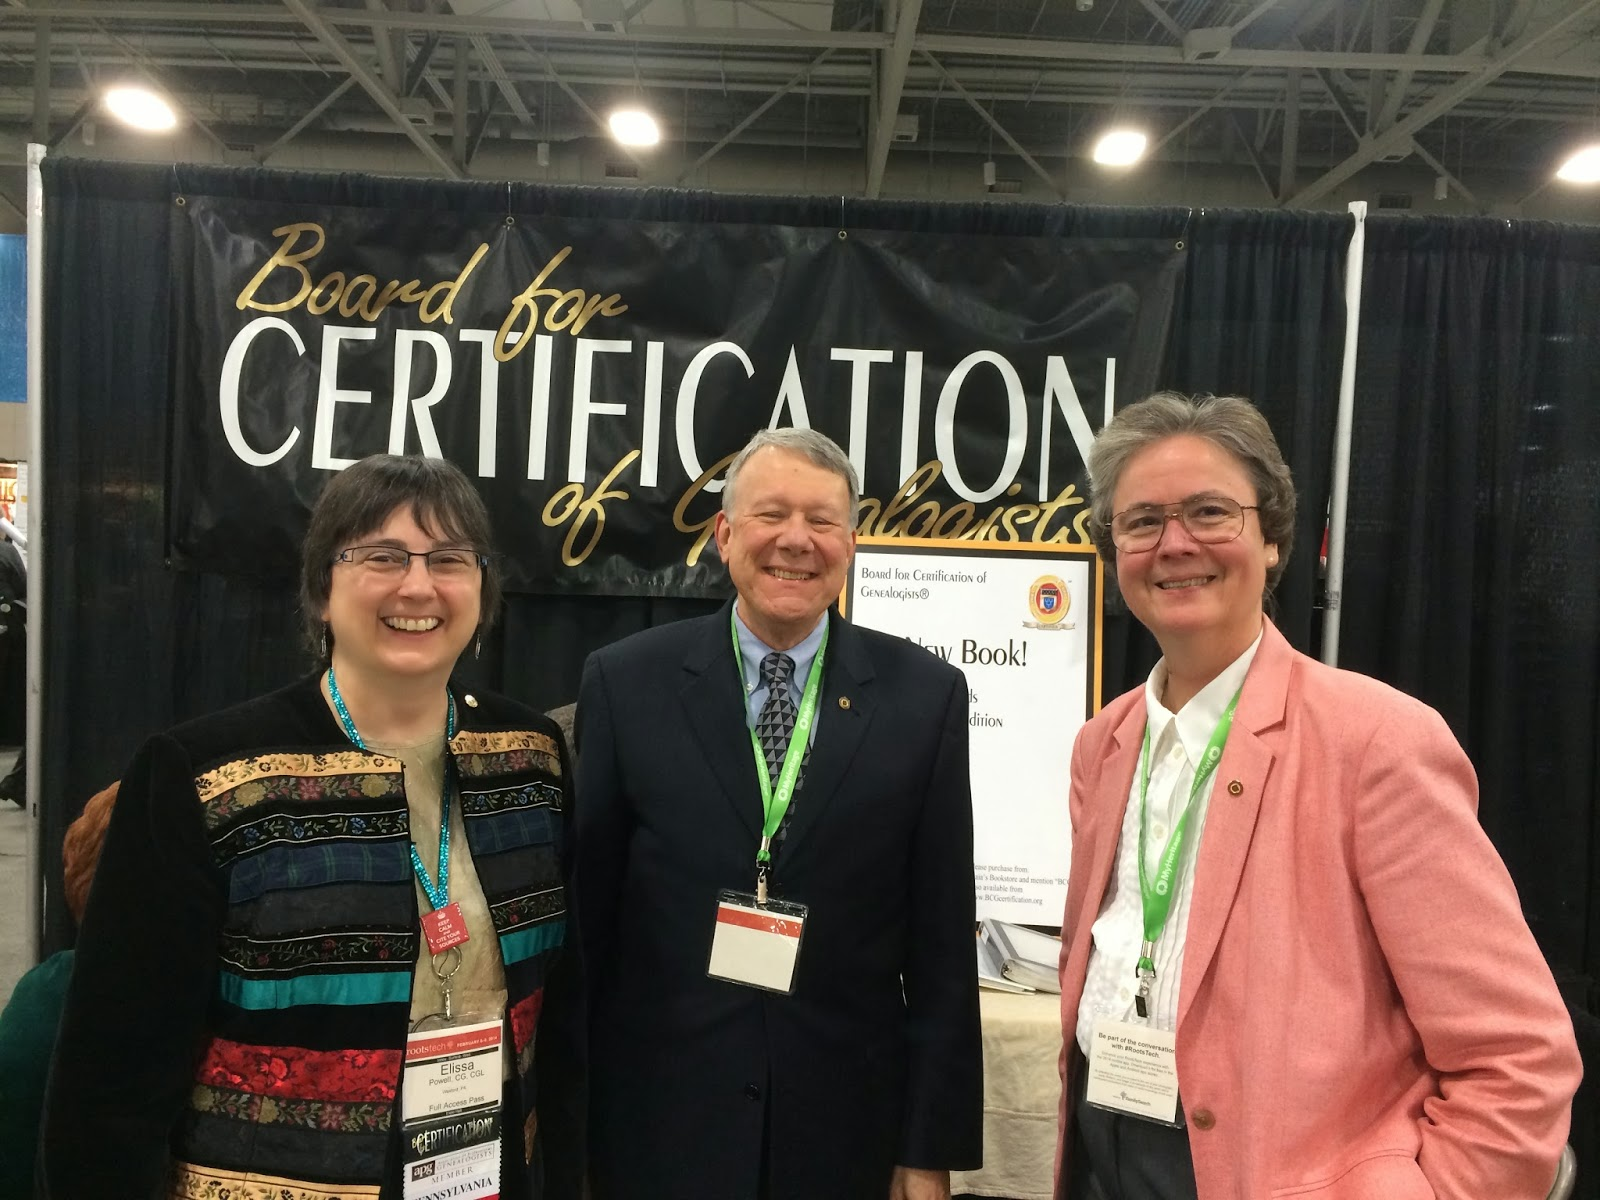 Board for Certification of Genealogists (BCG) Display in Expo Hall